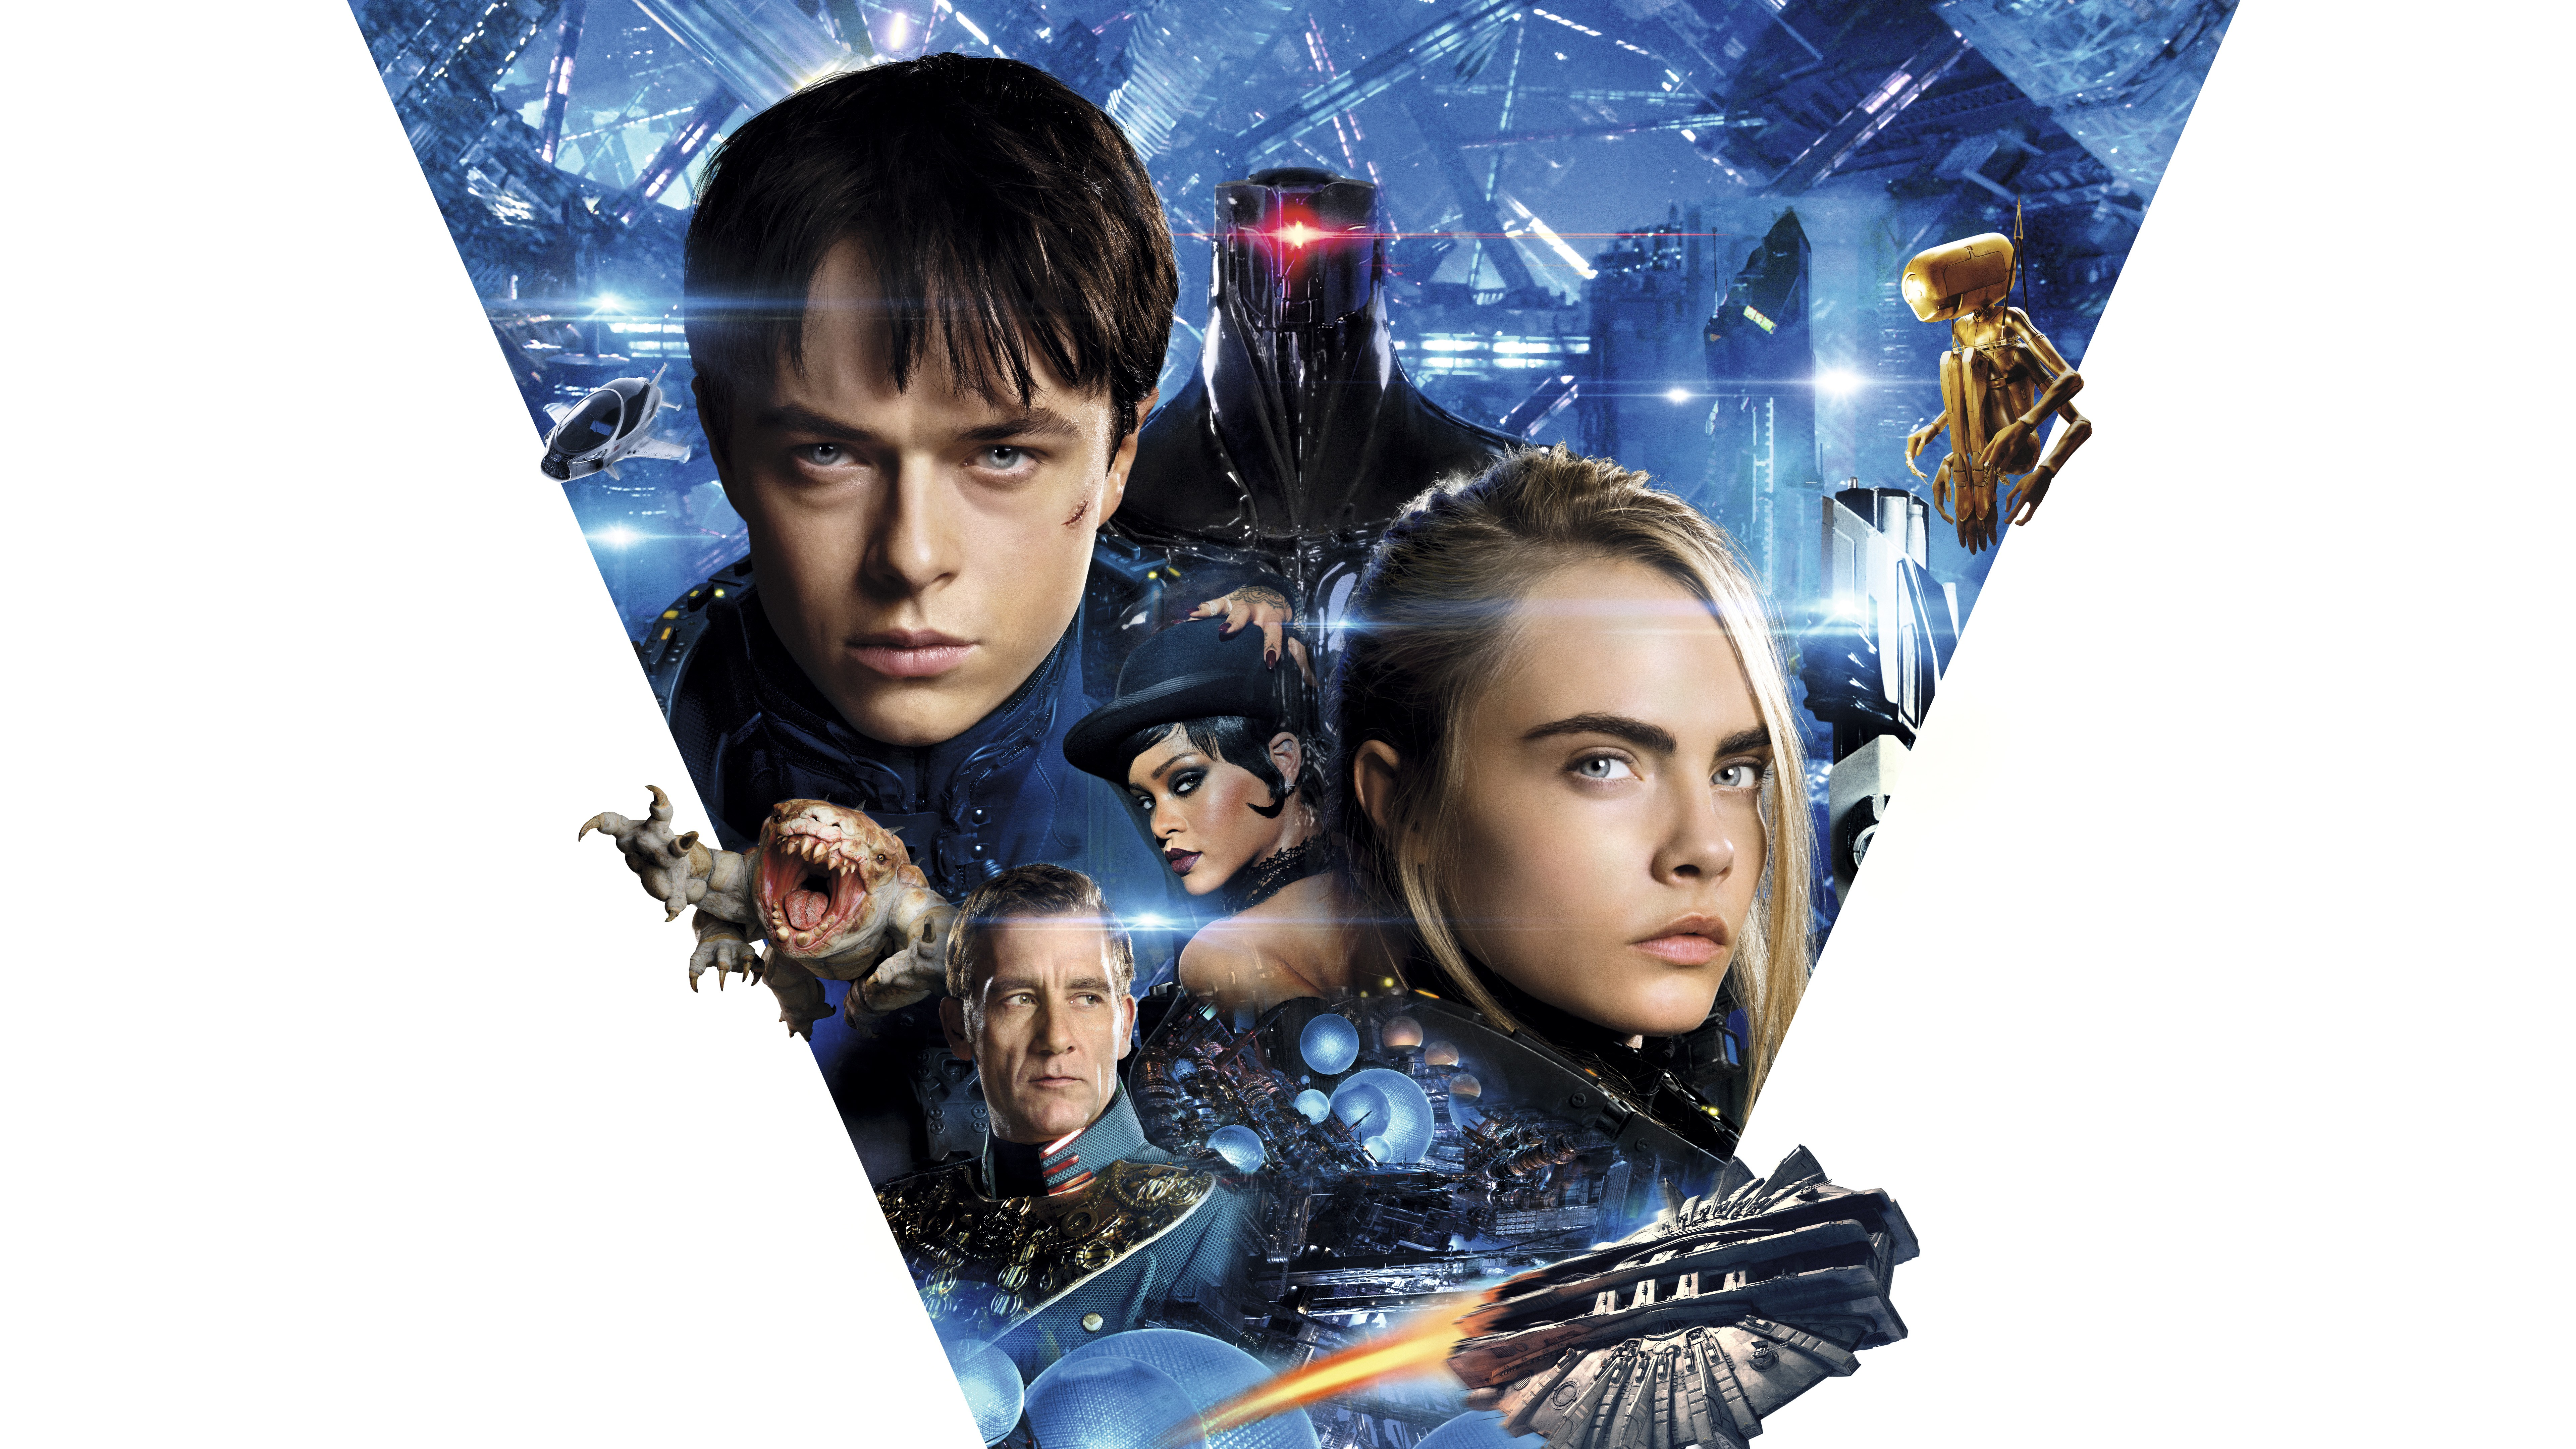 valerian_and_the_city_of_a_thousand_planets_4k_8k-7680x4320